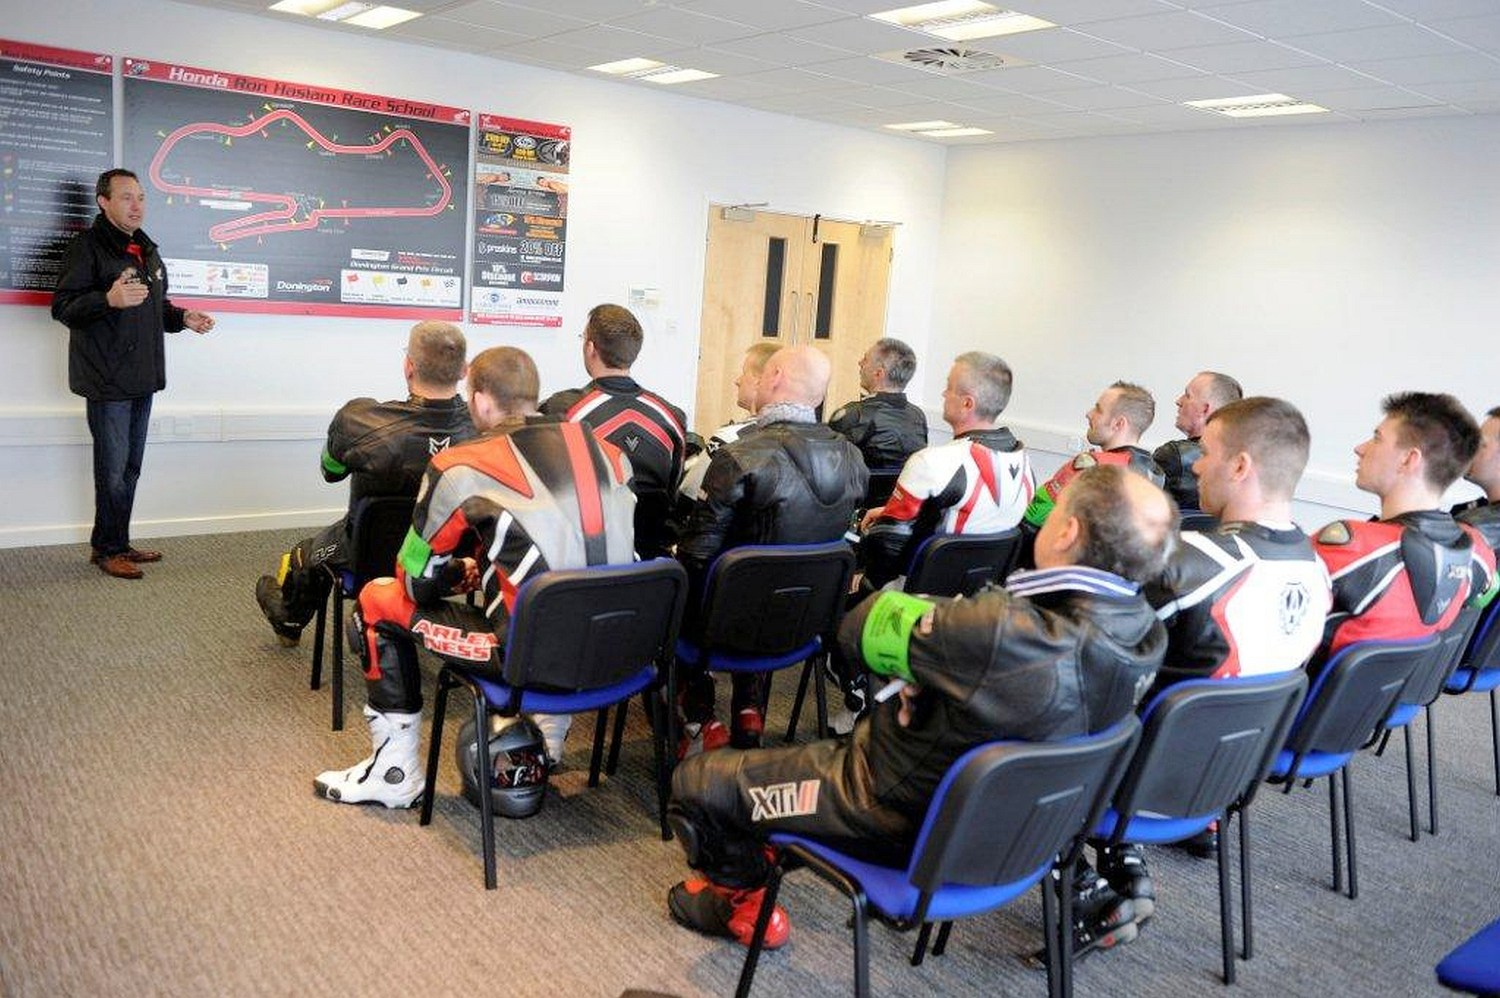 Track day guide riders briefing